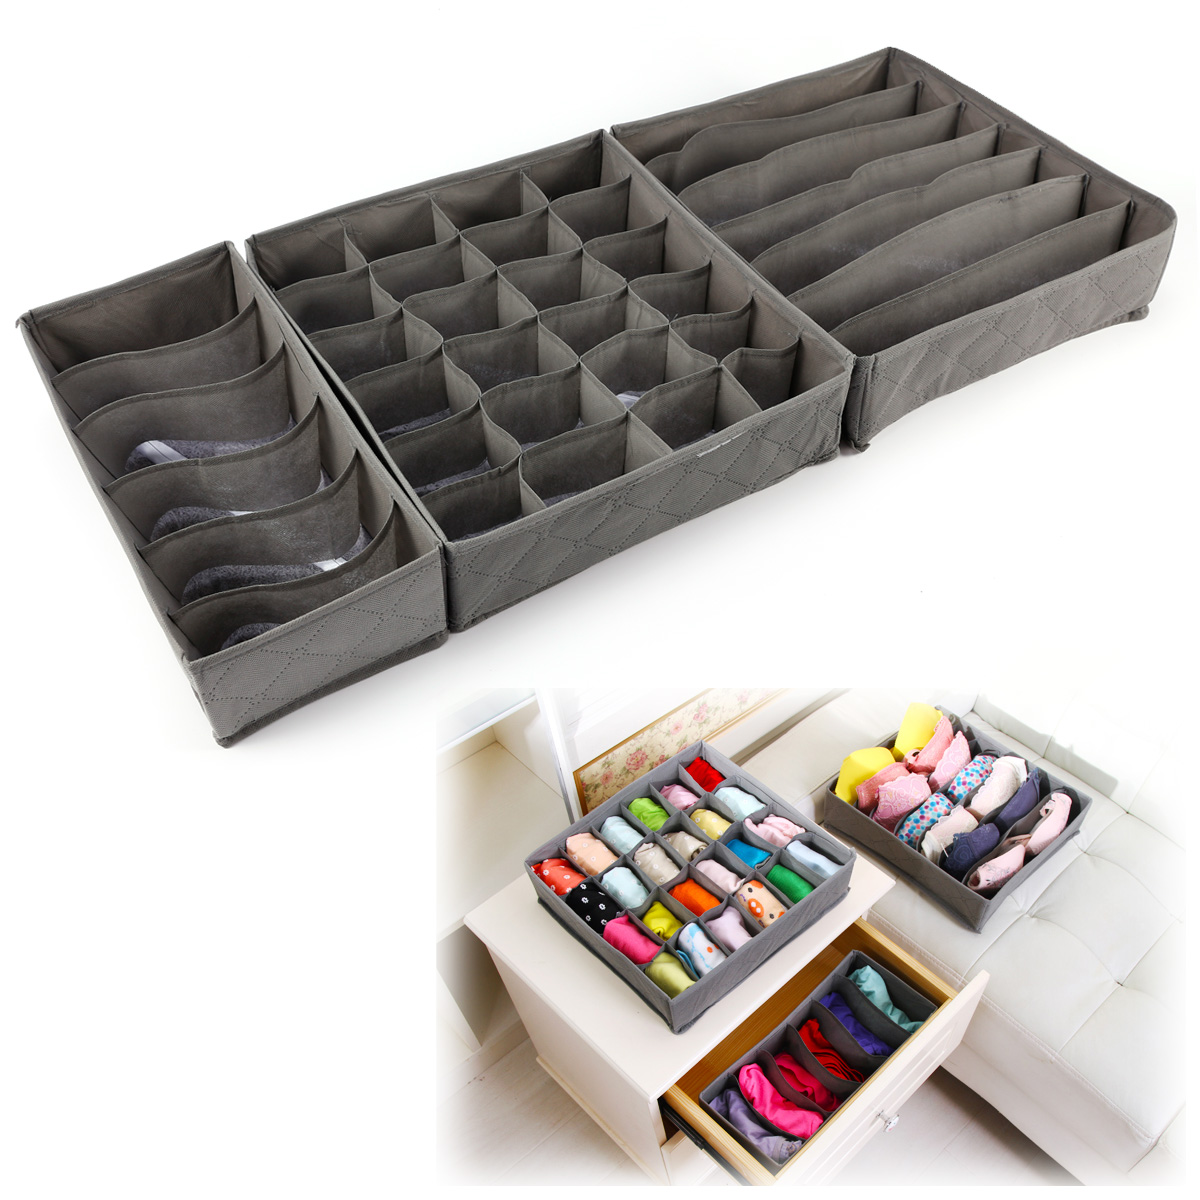 3 pi ces bo te de rangement pliable non tiss sac organisateur sous v tement ebay. Black Bedroom Furniture Sets. Home Design Ideas